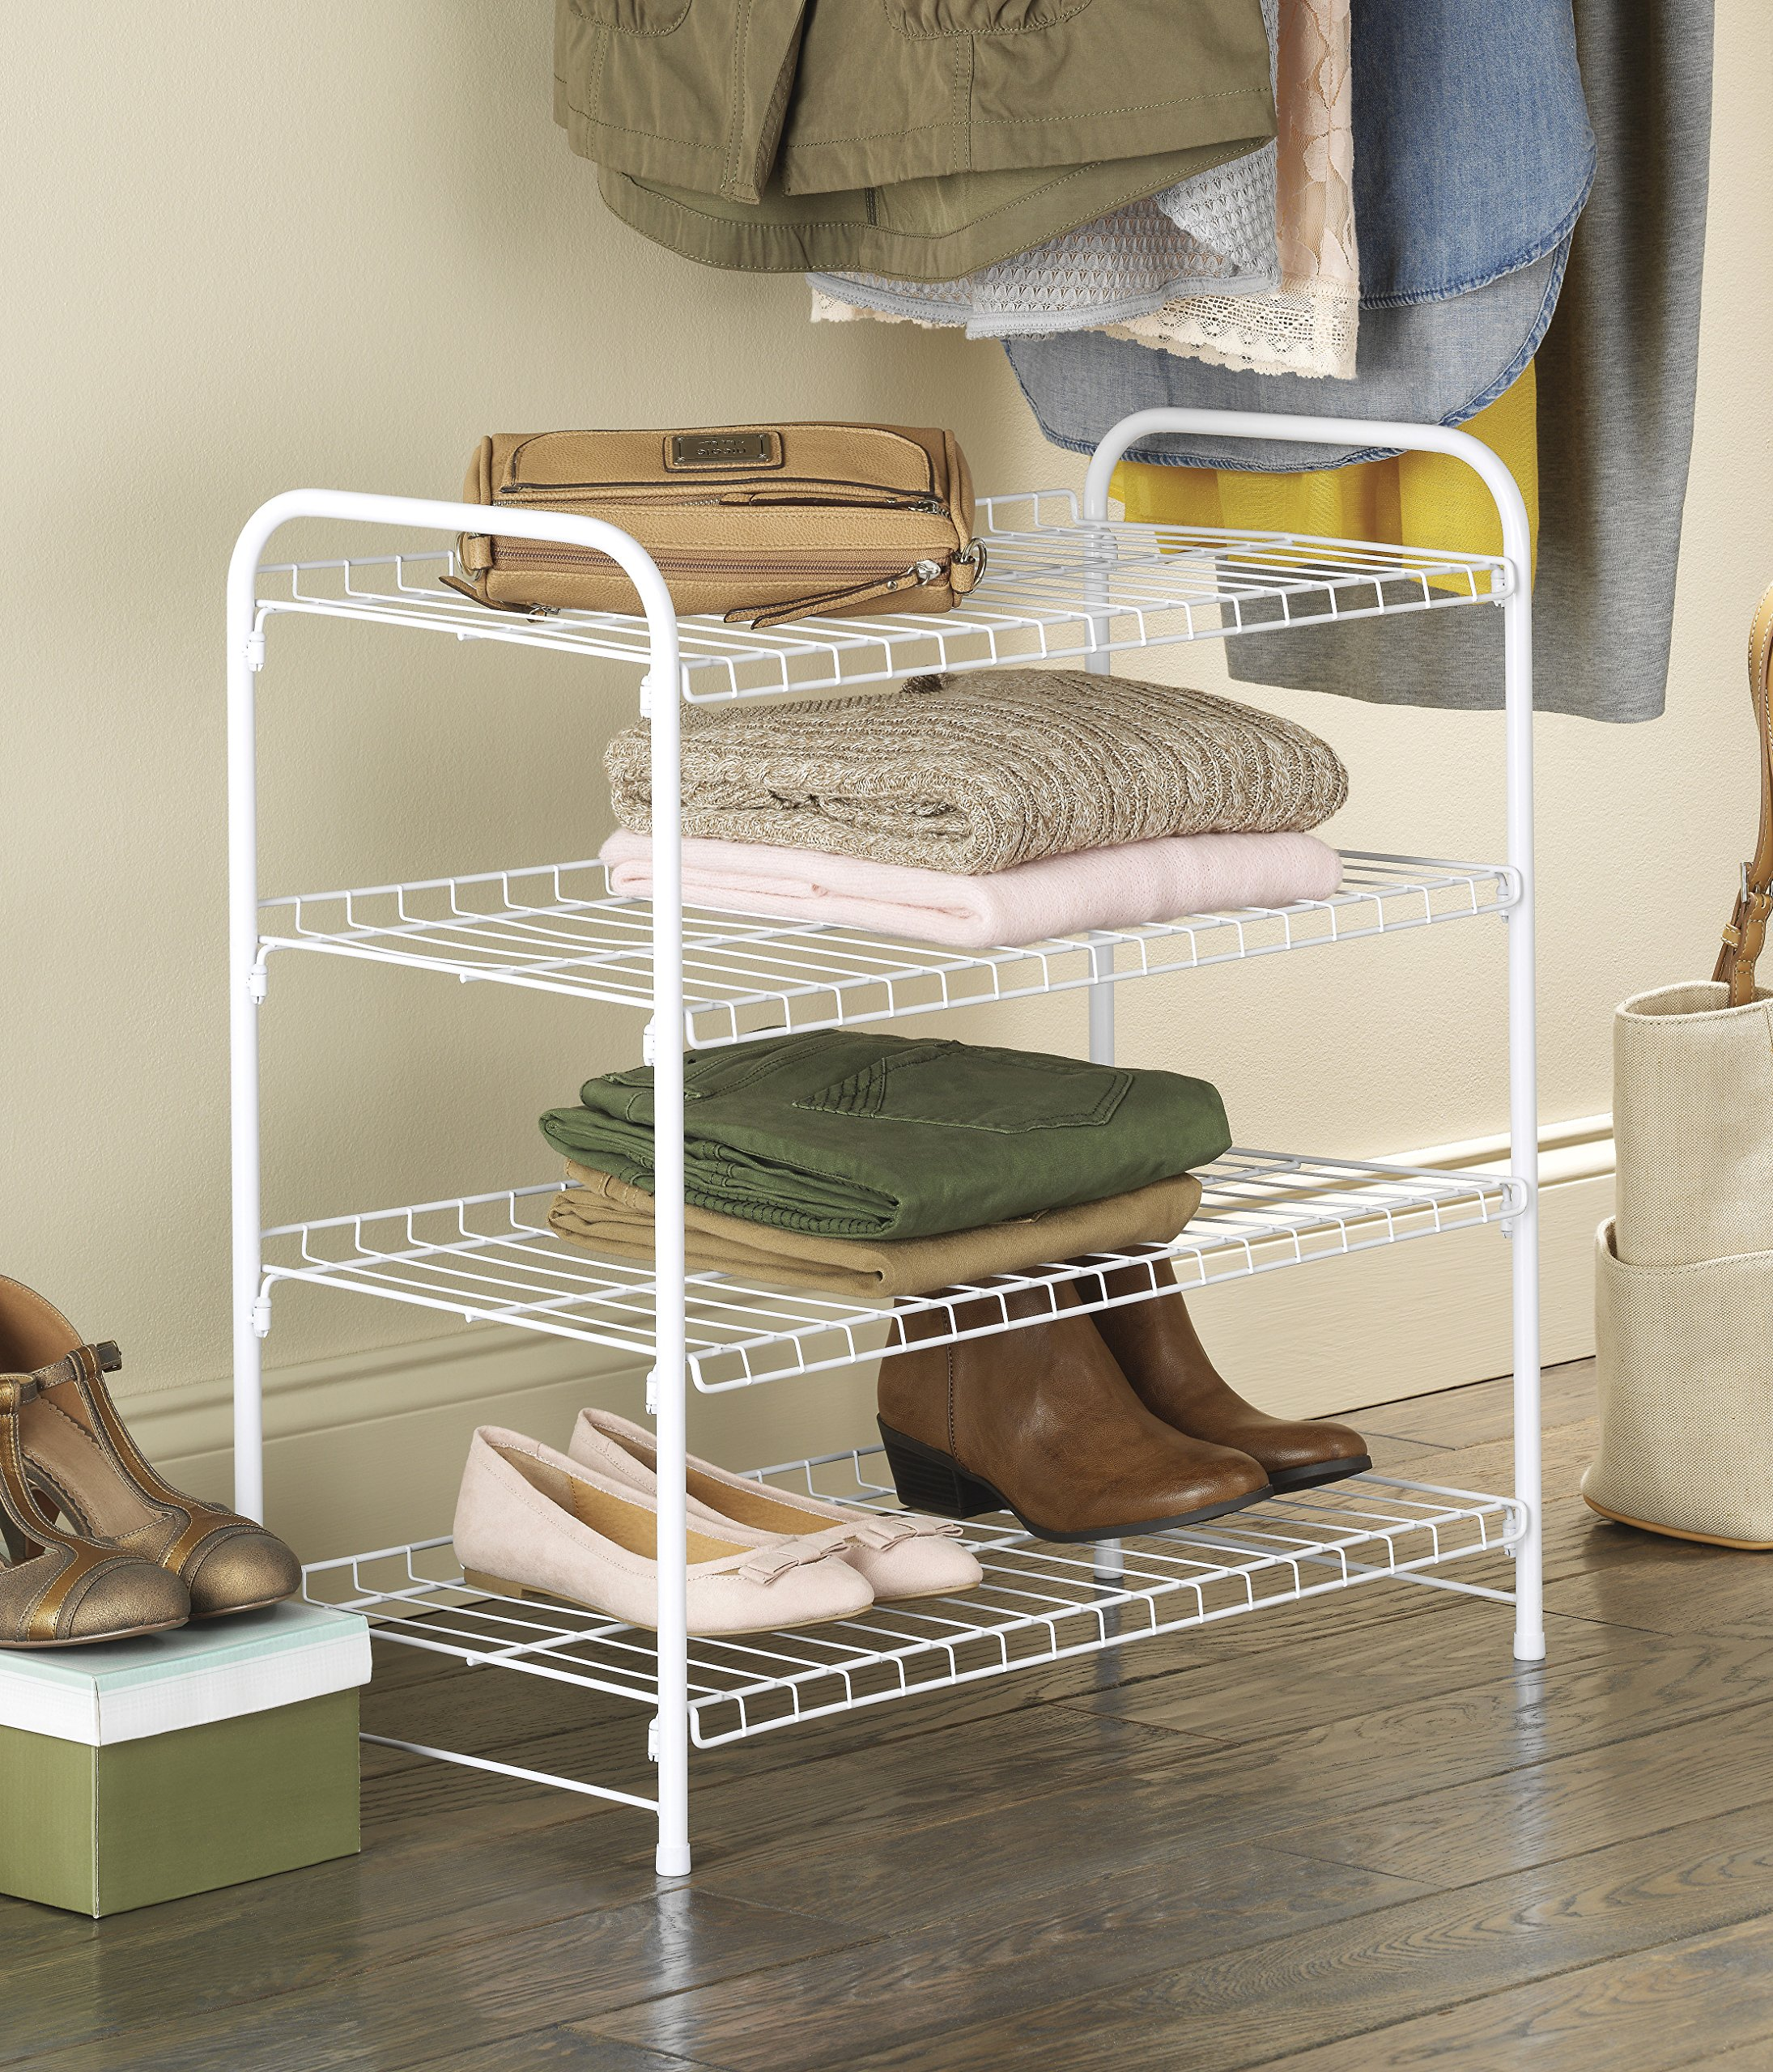 Whitmor 4 Tier White Wire Closet Shelves 689851181870 | eBay